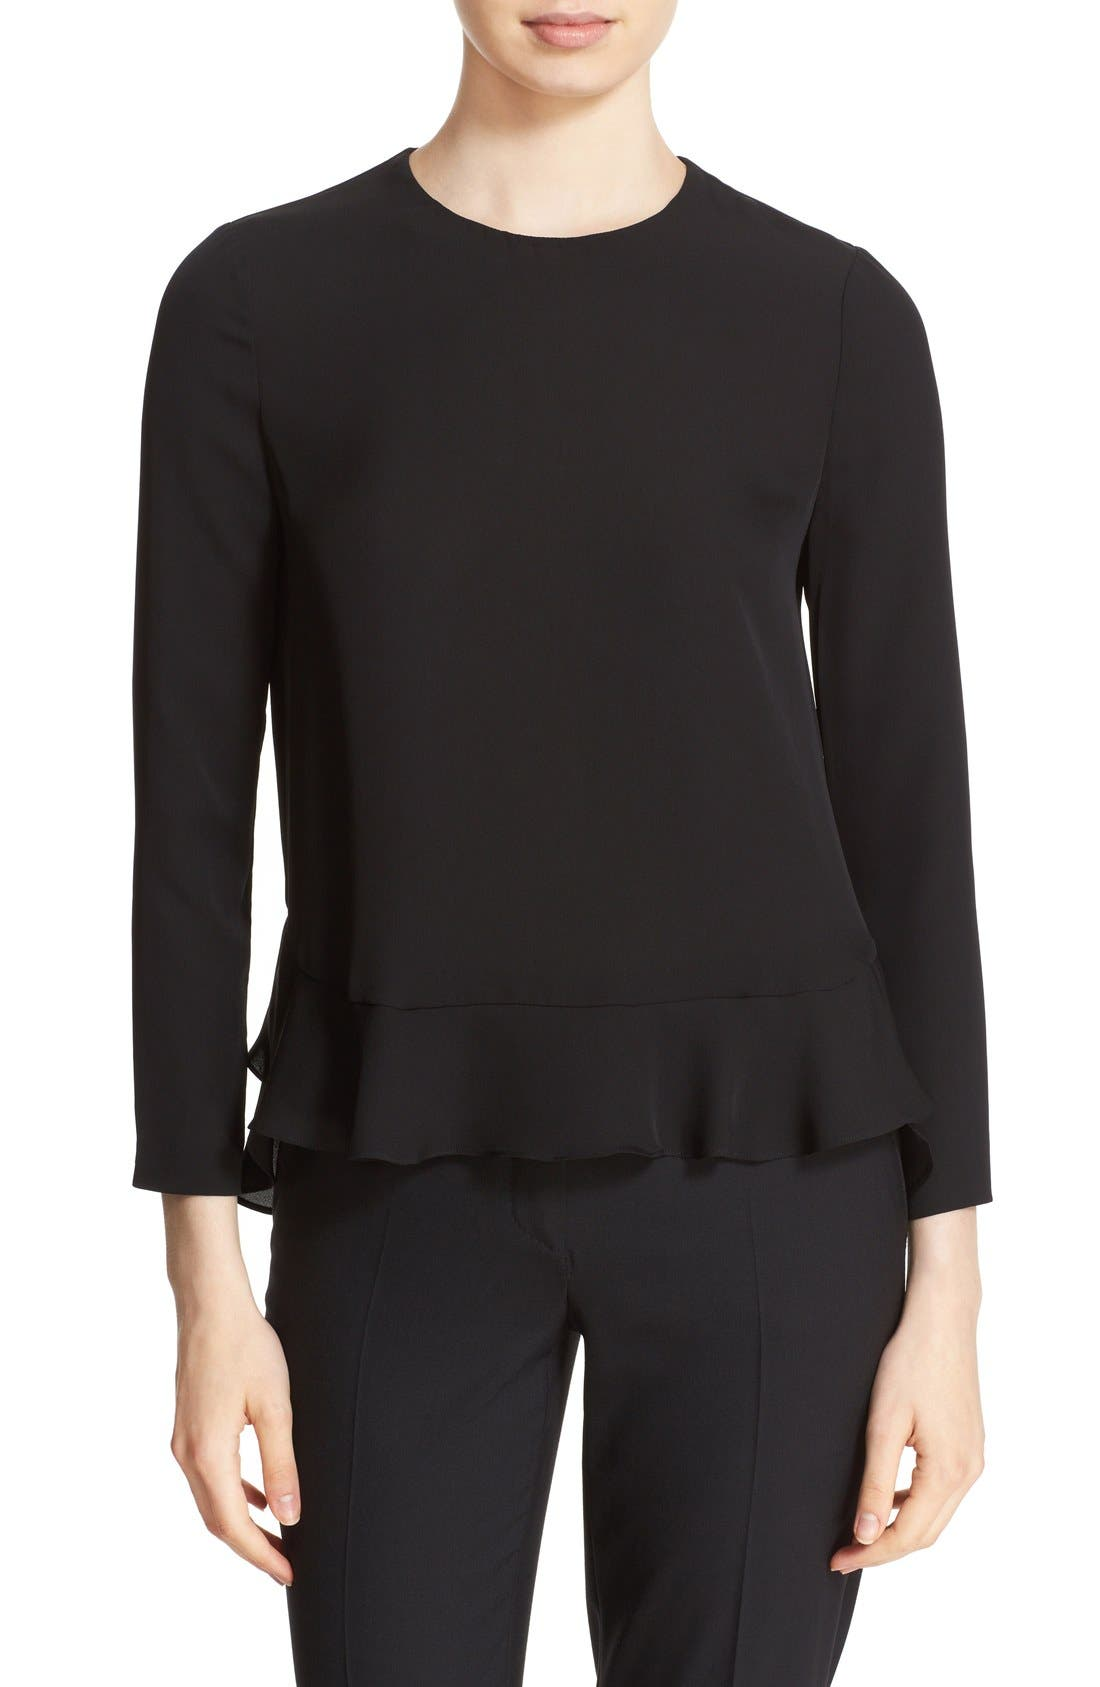 Alternate Image 1 Selected - Diane von Furstenberg 'Galia' Blouse